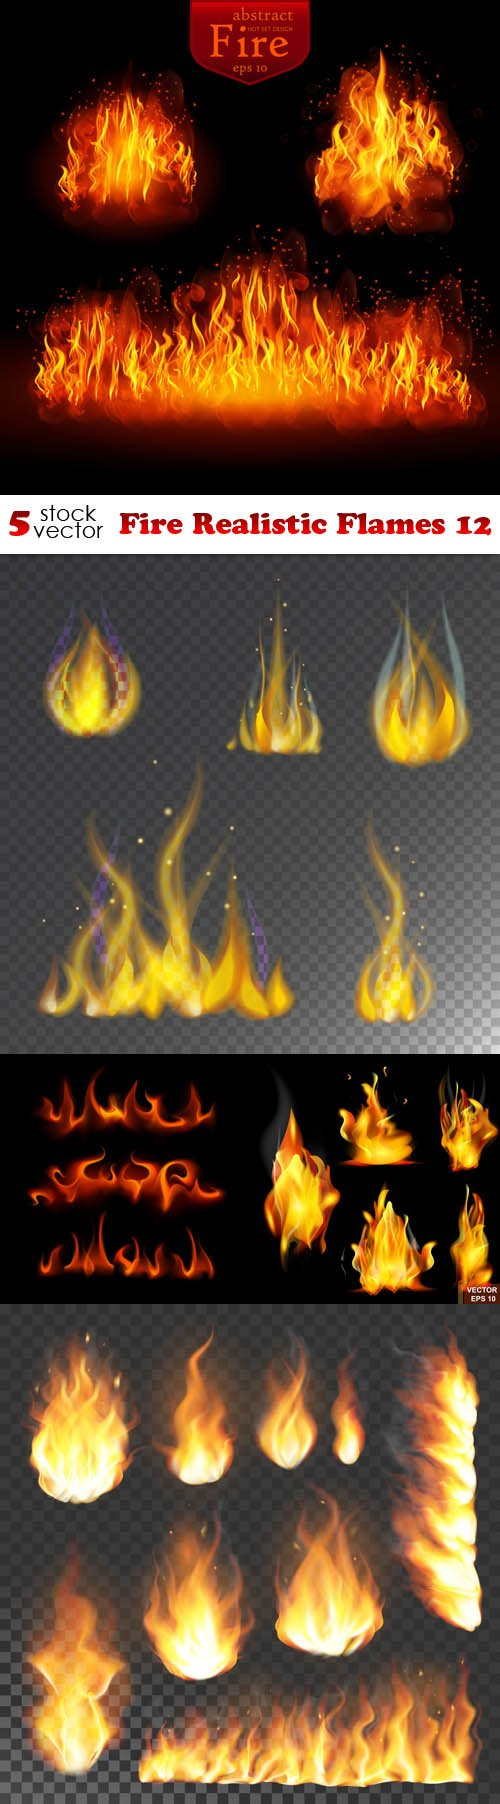 Vectors - Fire Realistic Flames 12